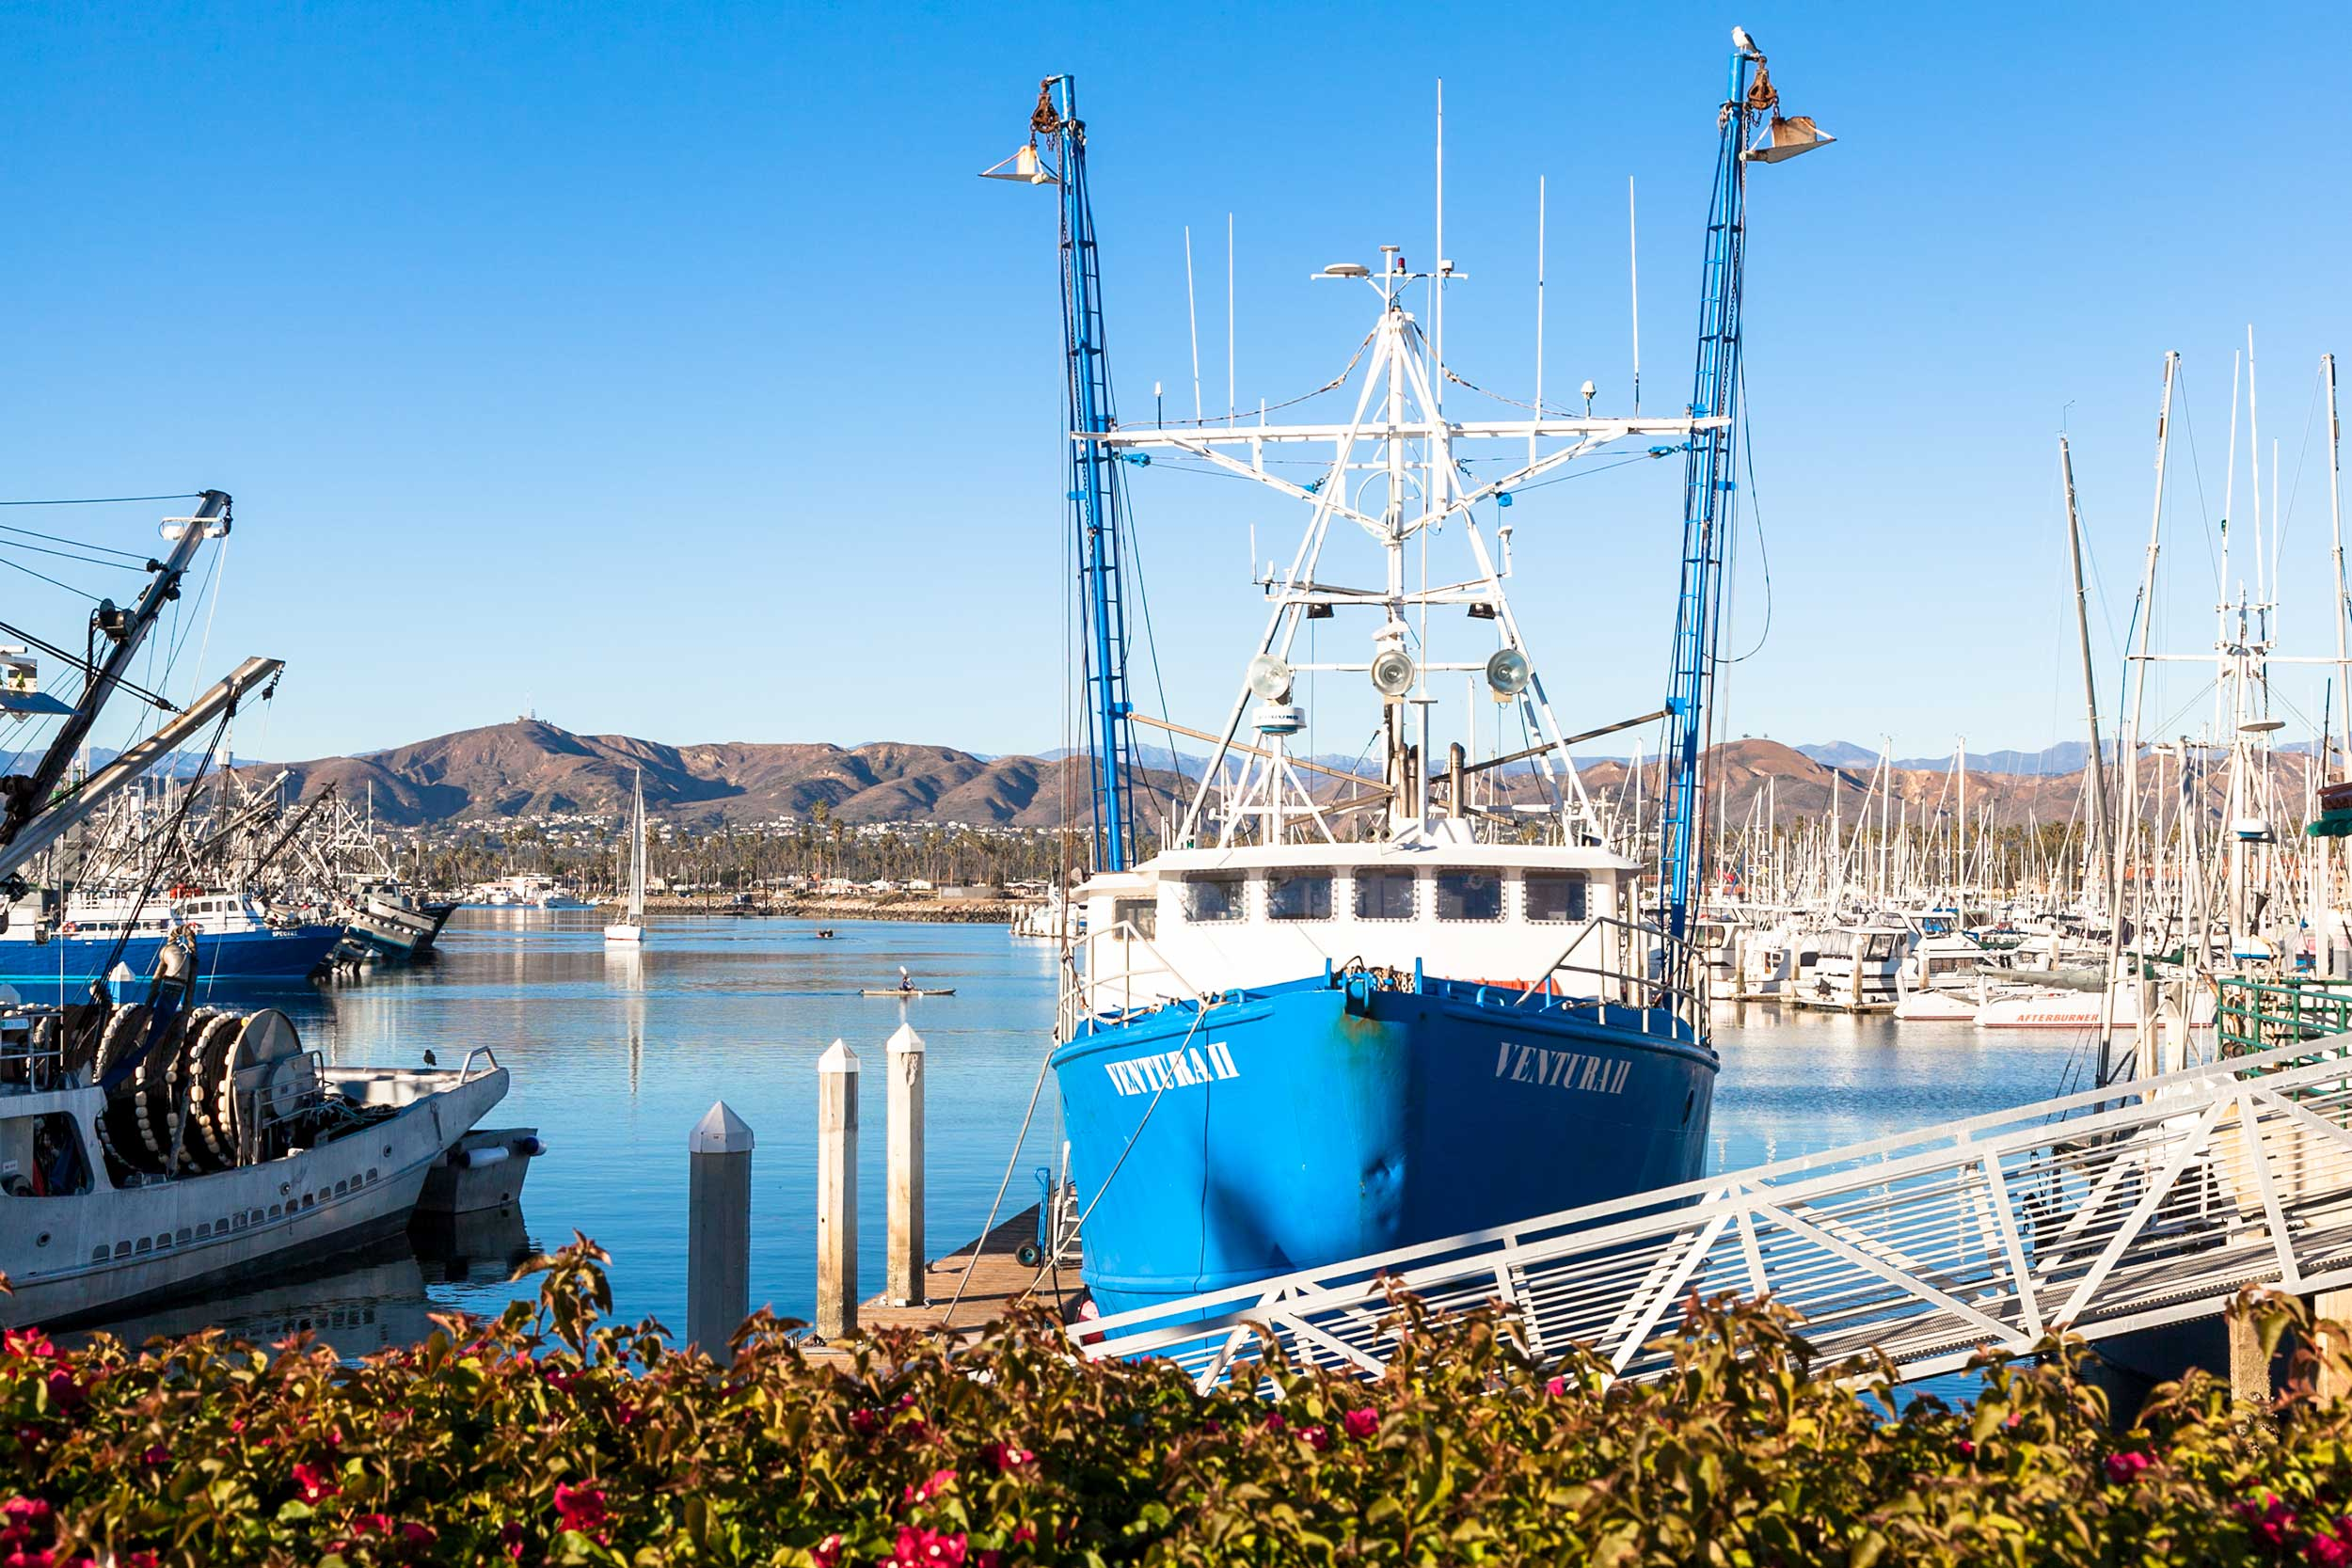 View of the Ventura harbor and Fishing Boats outside Andria's Seafood